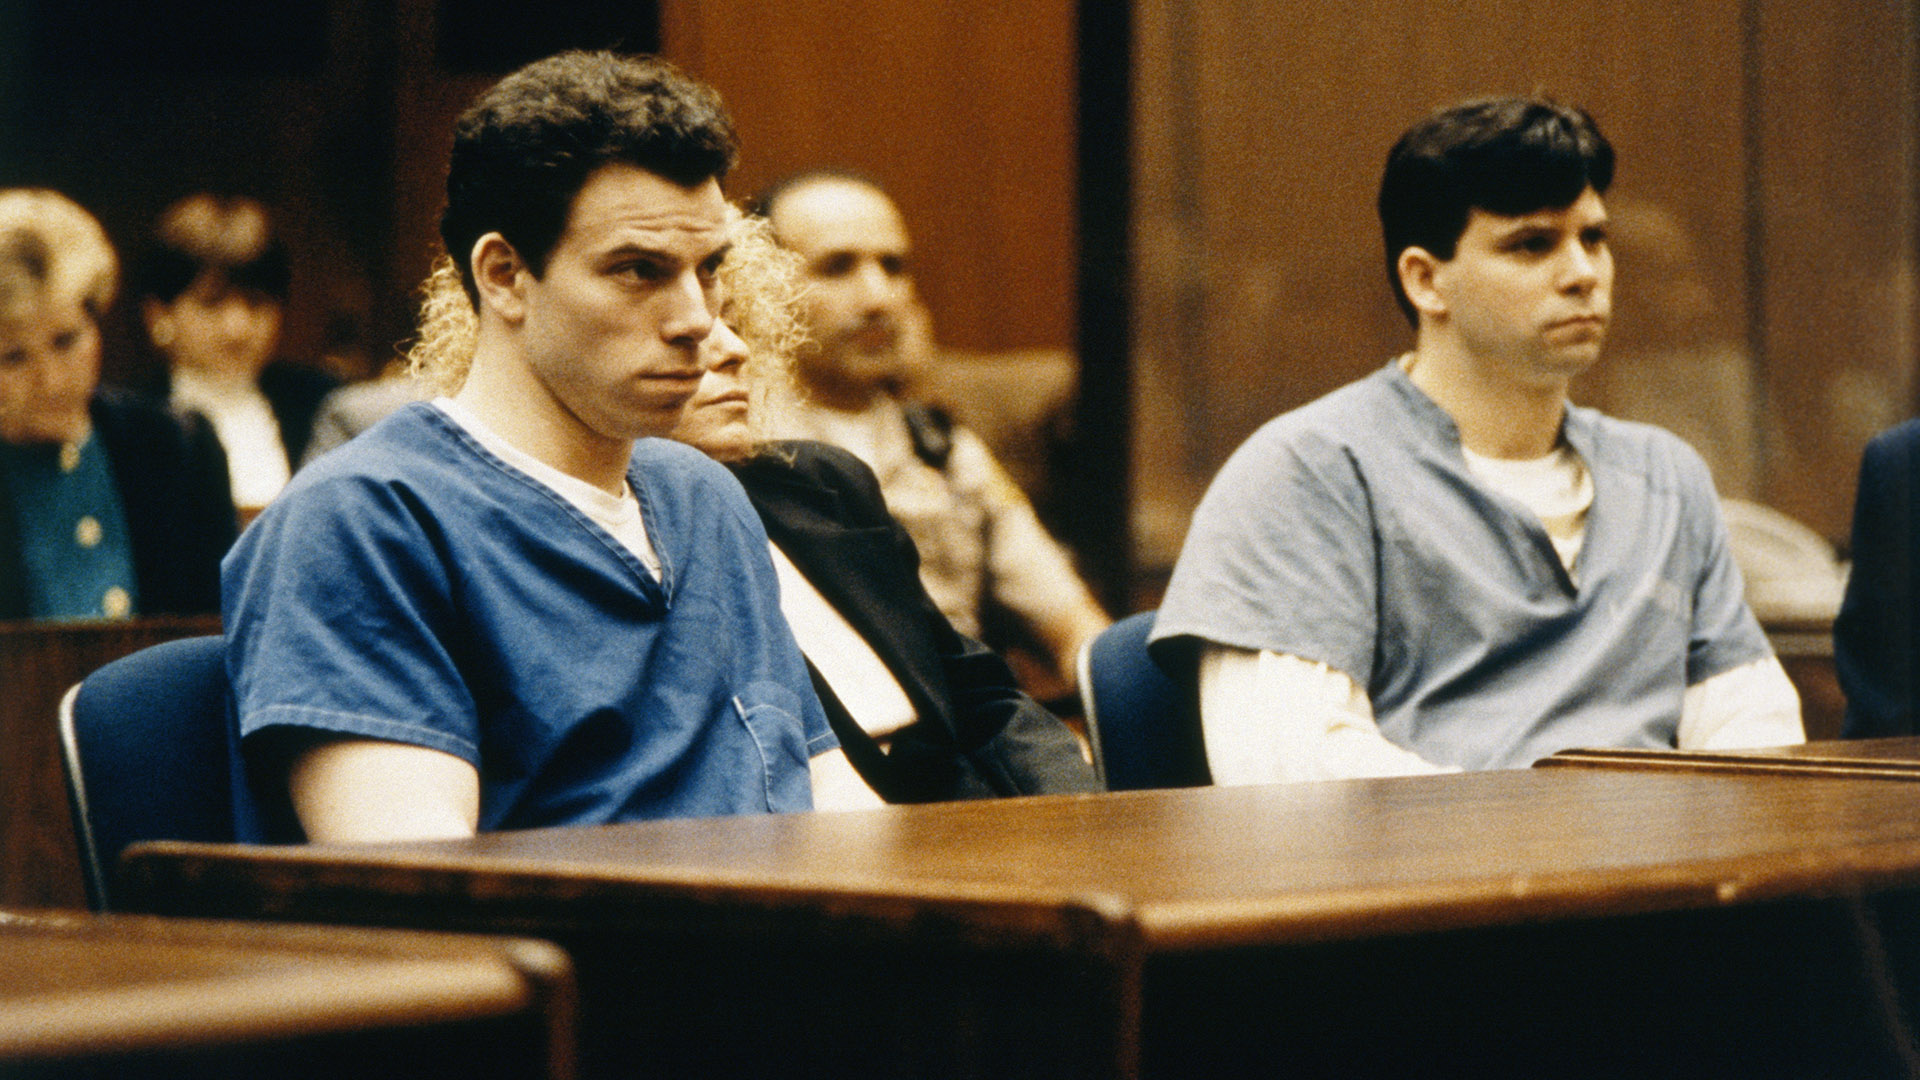 The Menendez Brothers and O.J. Simpson: Revealing Conversations Between Unlikely Jailhouse Friends